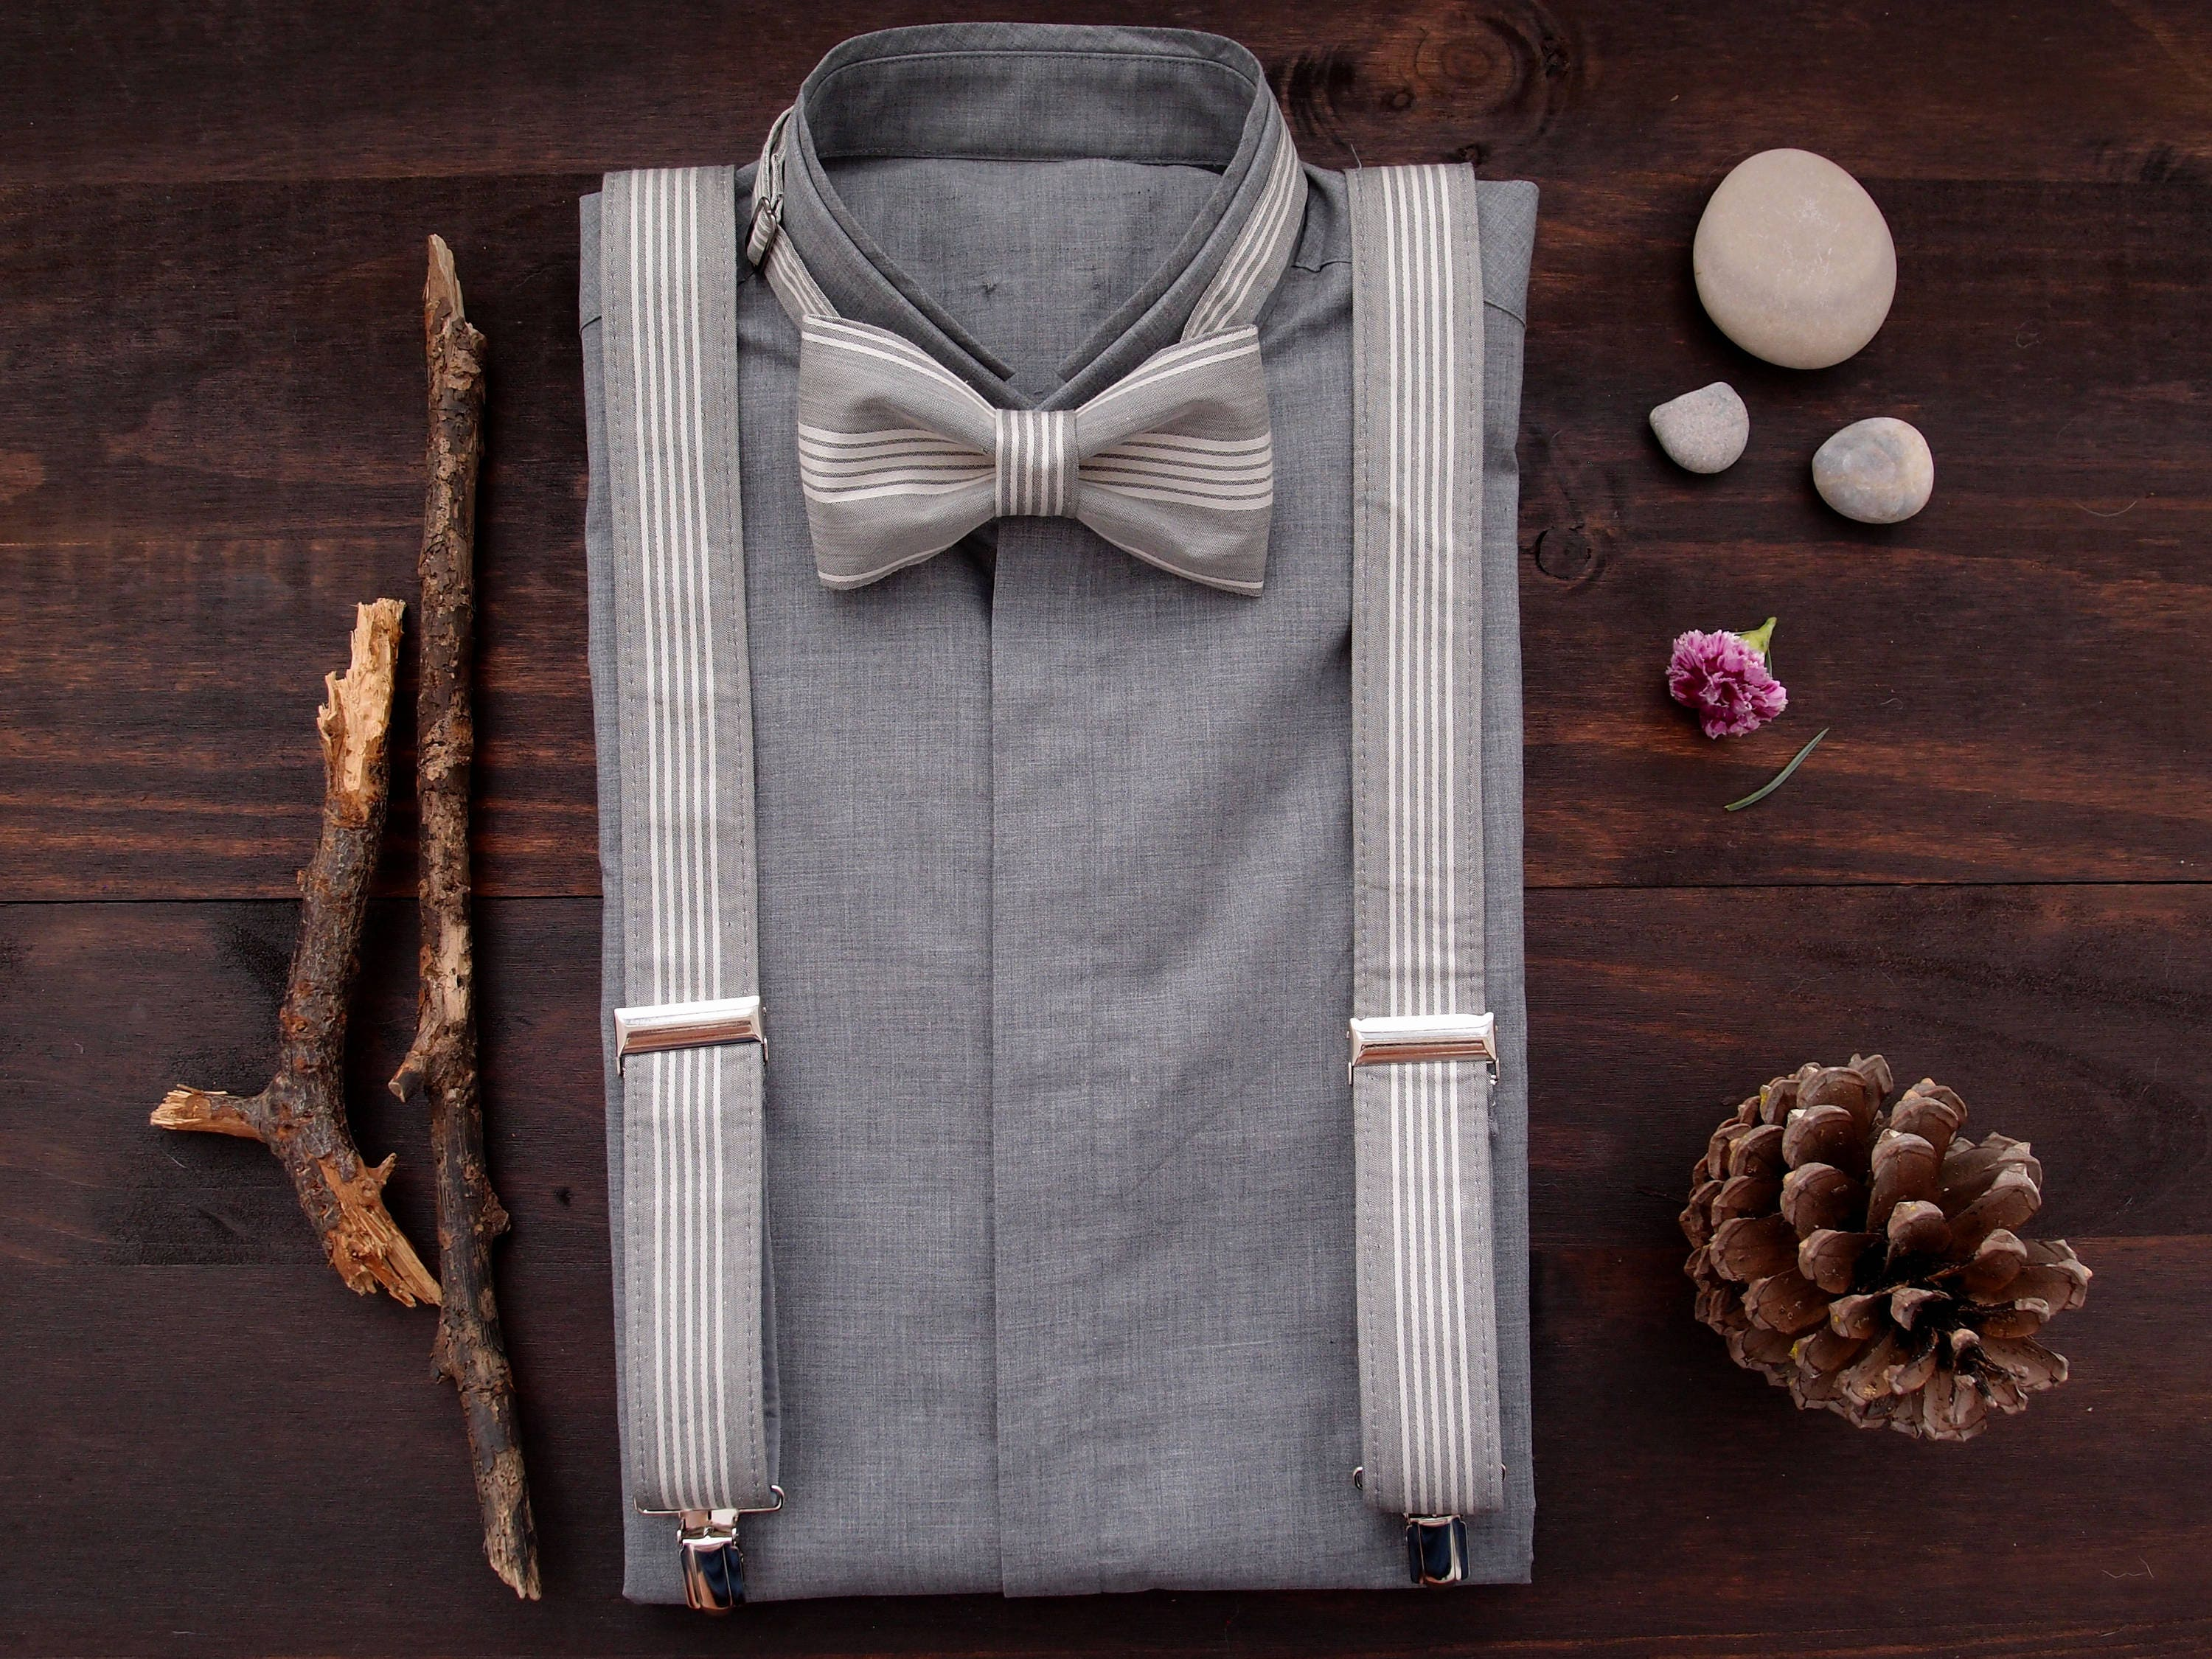 16e03a2b4b57 Grey Suspenders and Bow Tie, Suspenders Set, Braces and Bow Tie, Grooms  Bowtie and Suspenders, Mens Braces set, from wife to husband gift